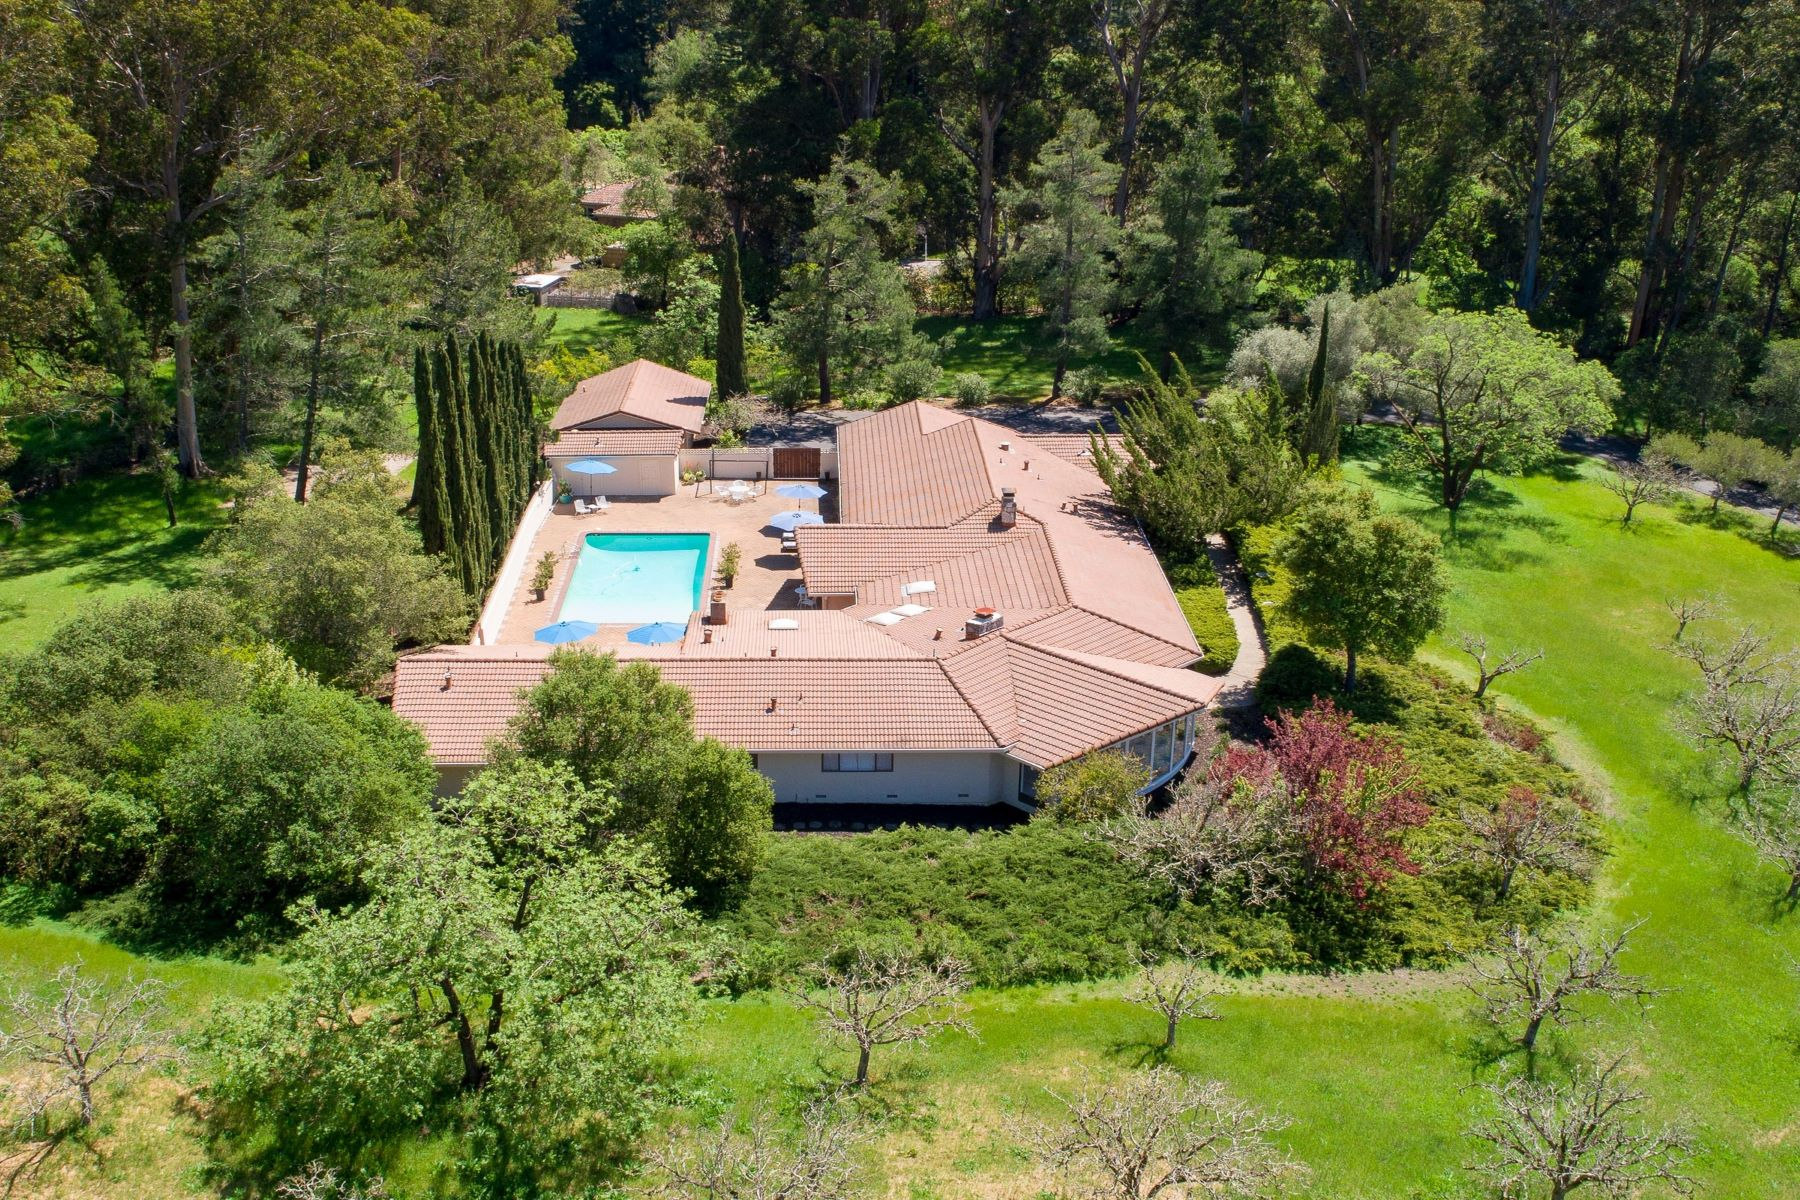 Single Family Homes for Sale at 310 Kings Mountain Road Woodside, California 94062 United States